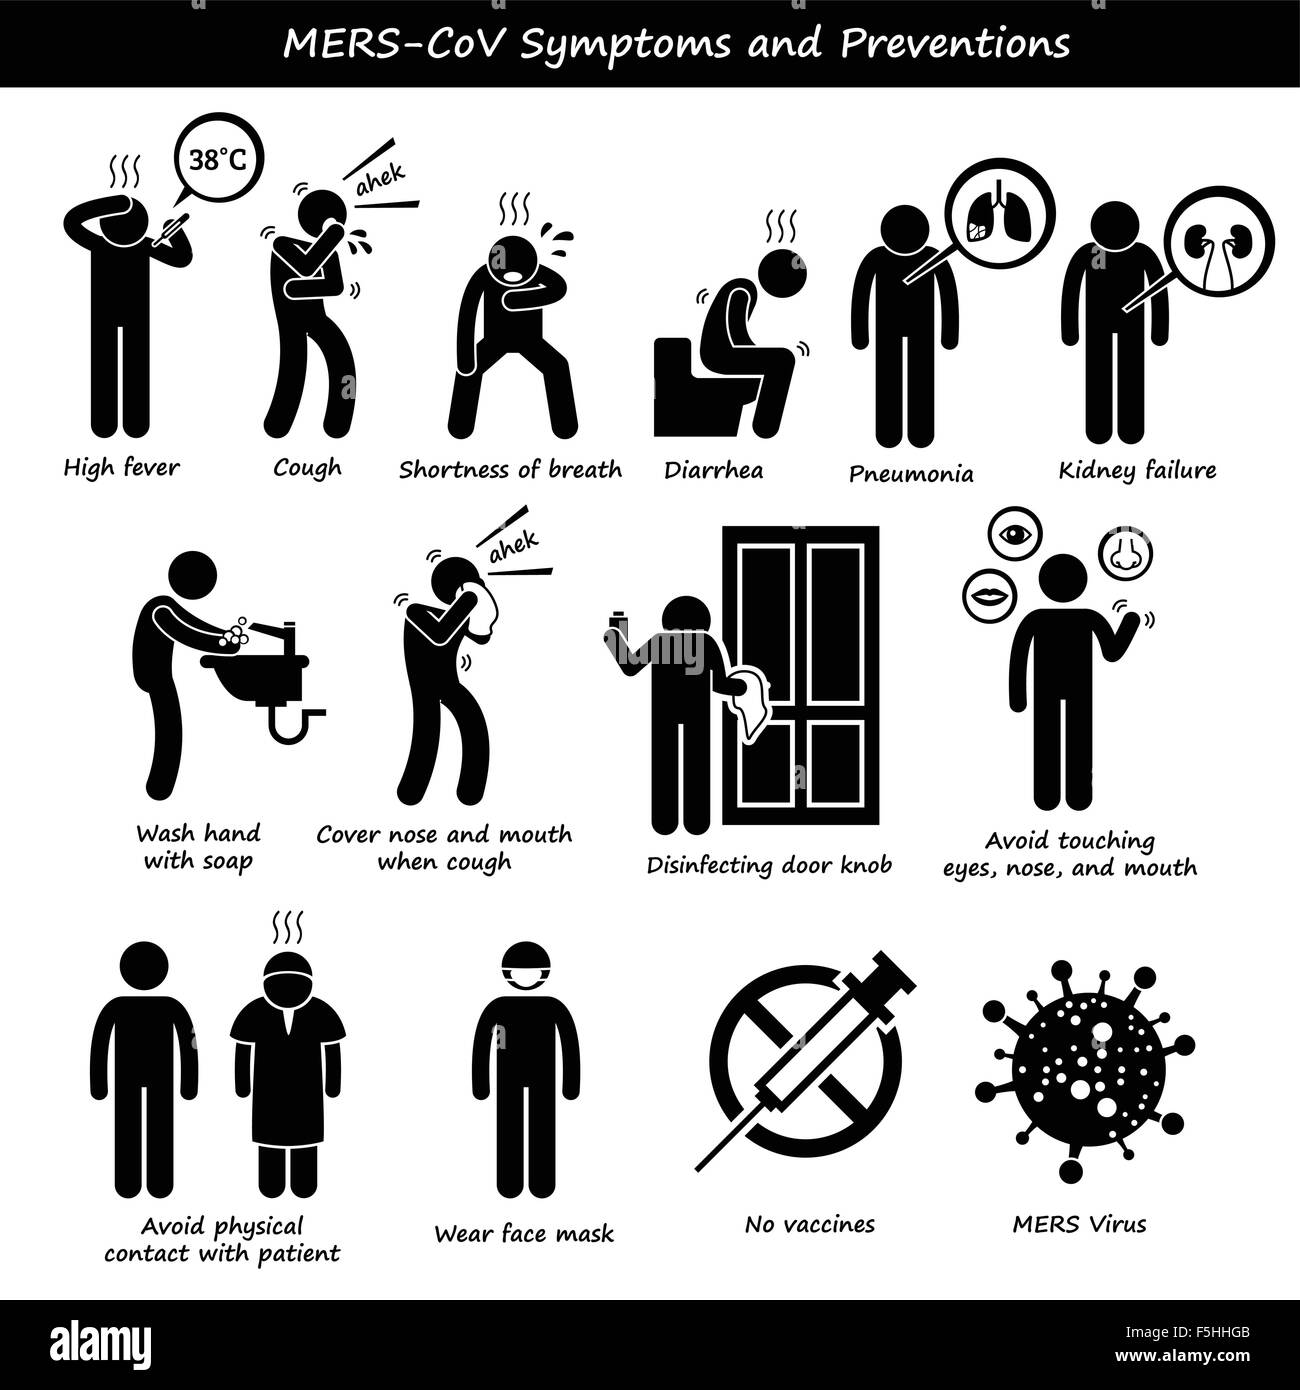 Mers-CoV Symptoms Transmission Prevention Stick Figure Pictogram Icons - Stock Image